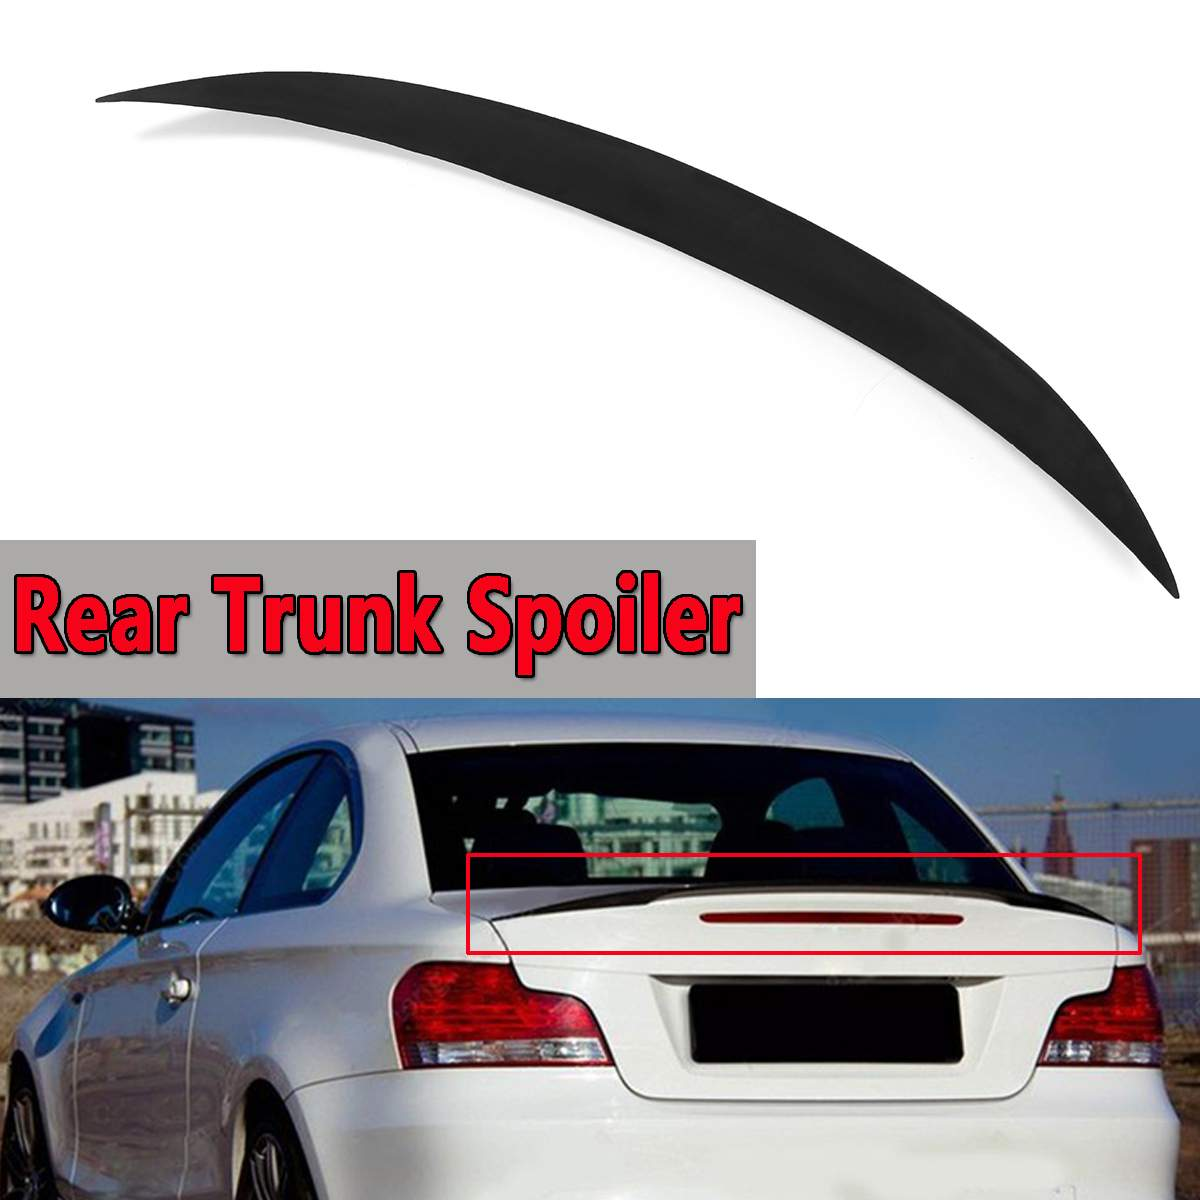 Rear Trunk Spoiler For BMW 08-13  E82 1 SERIES For COUPE 4 Door M Performance Style ABS Plastic Aluminum Rear Wing Spoiler 121cmRear Trunk Spoiler For BMW 08-13  E82 1 SERIES For COUPE 4 Door M Performance Style ABS Plastic Aluminum Rear Wing Spoiler 121cm